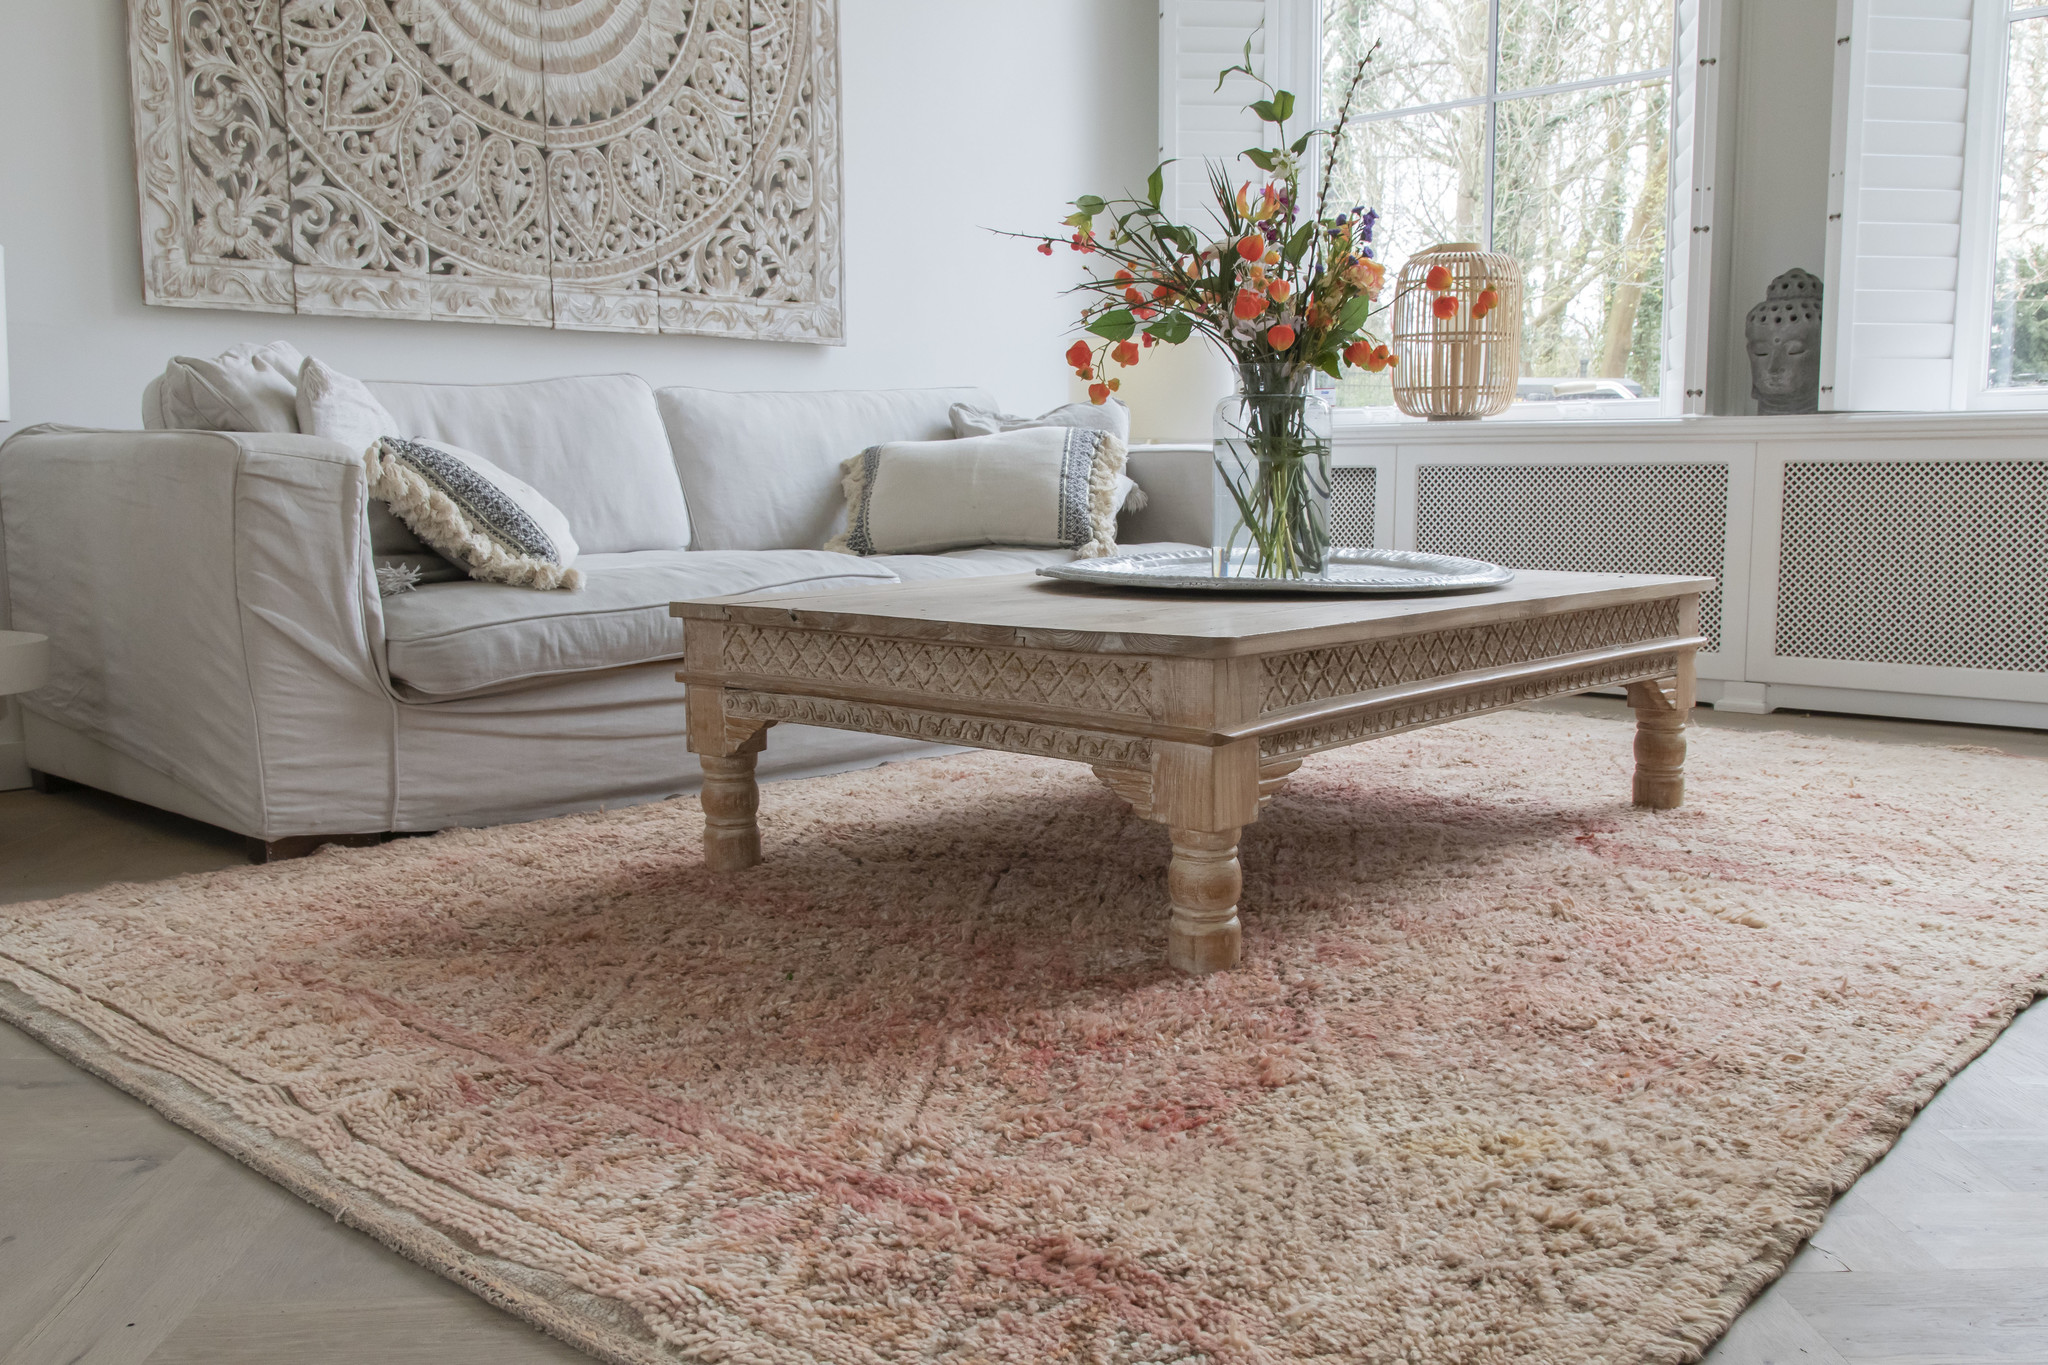 Simply Pure Handknotted Vintage Beni M'guild berber rug from Morocco 215 x 357 cm